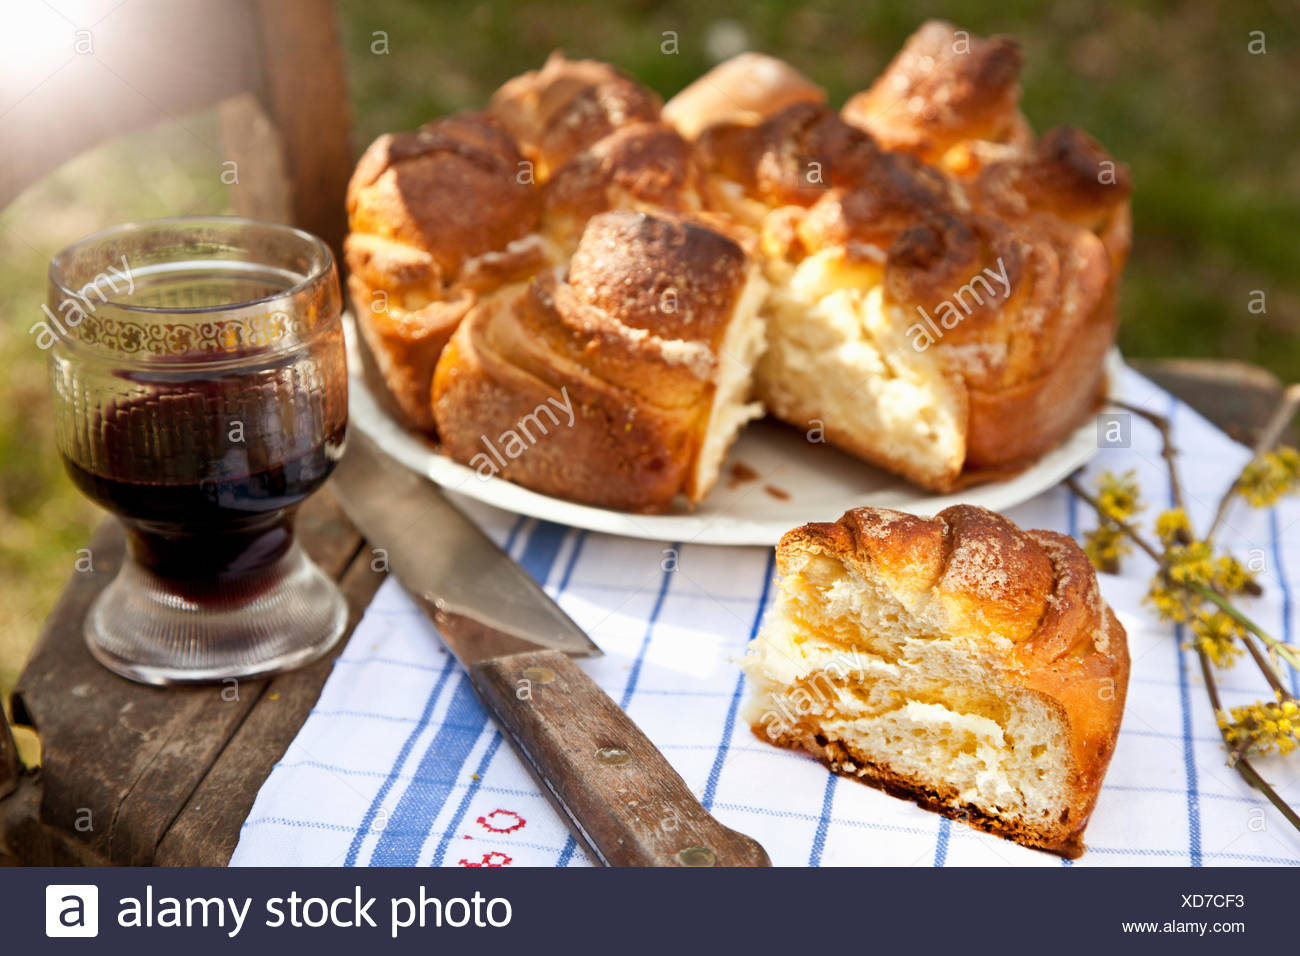 Cake on table with glass of red wine Stock Photo